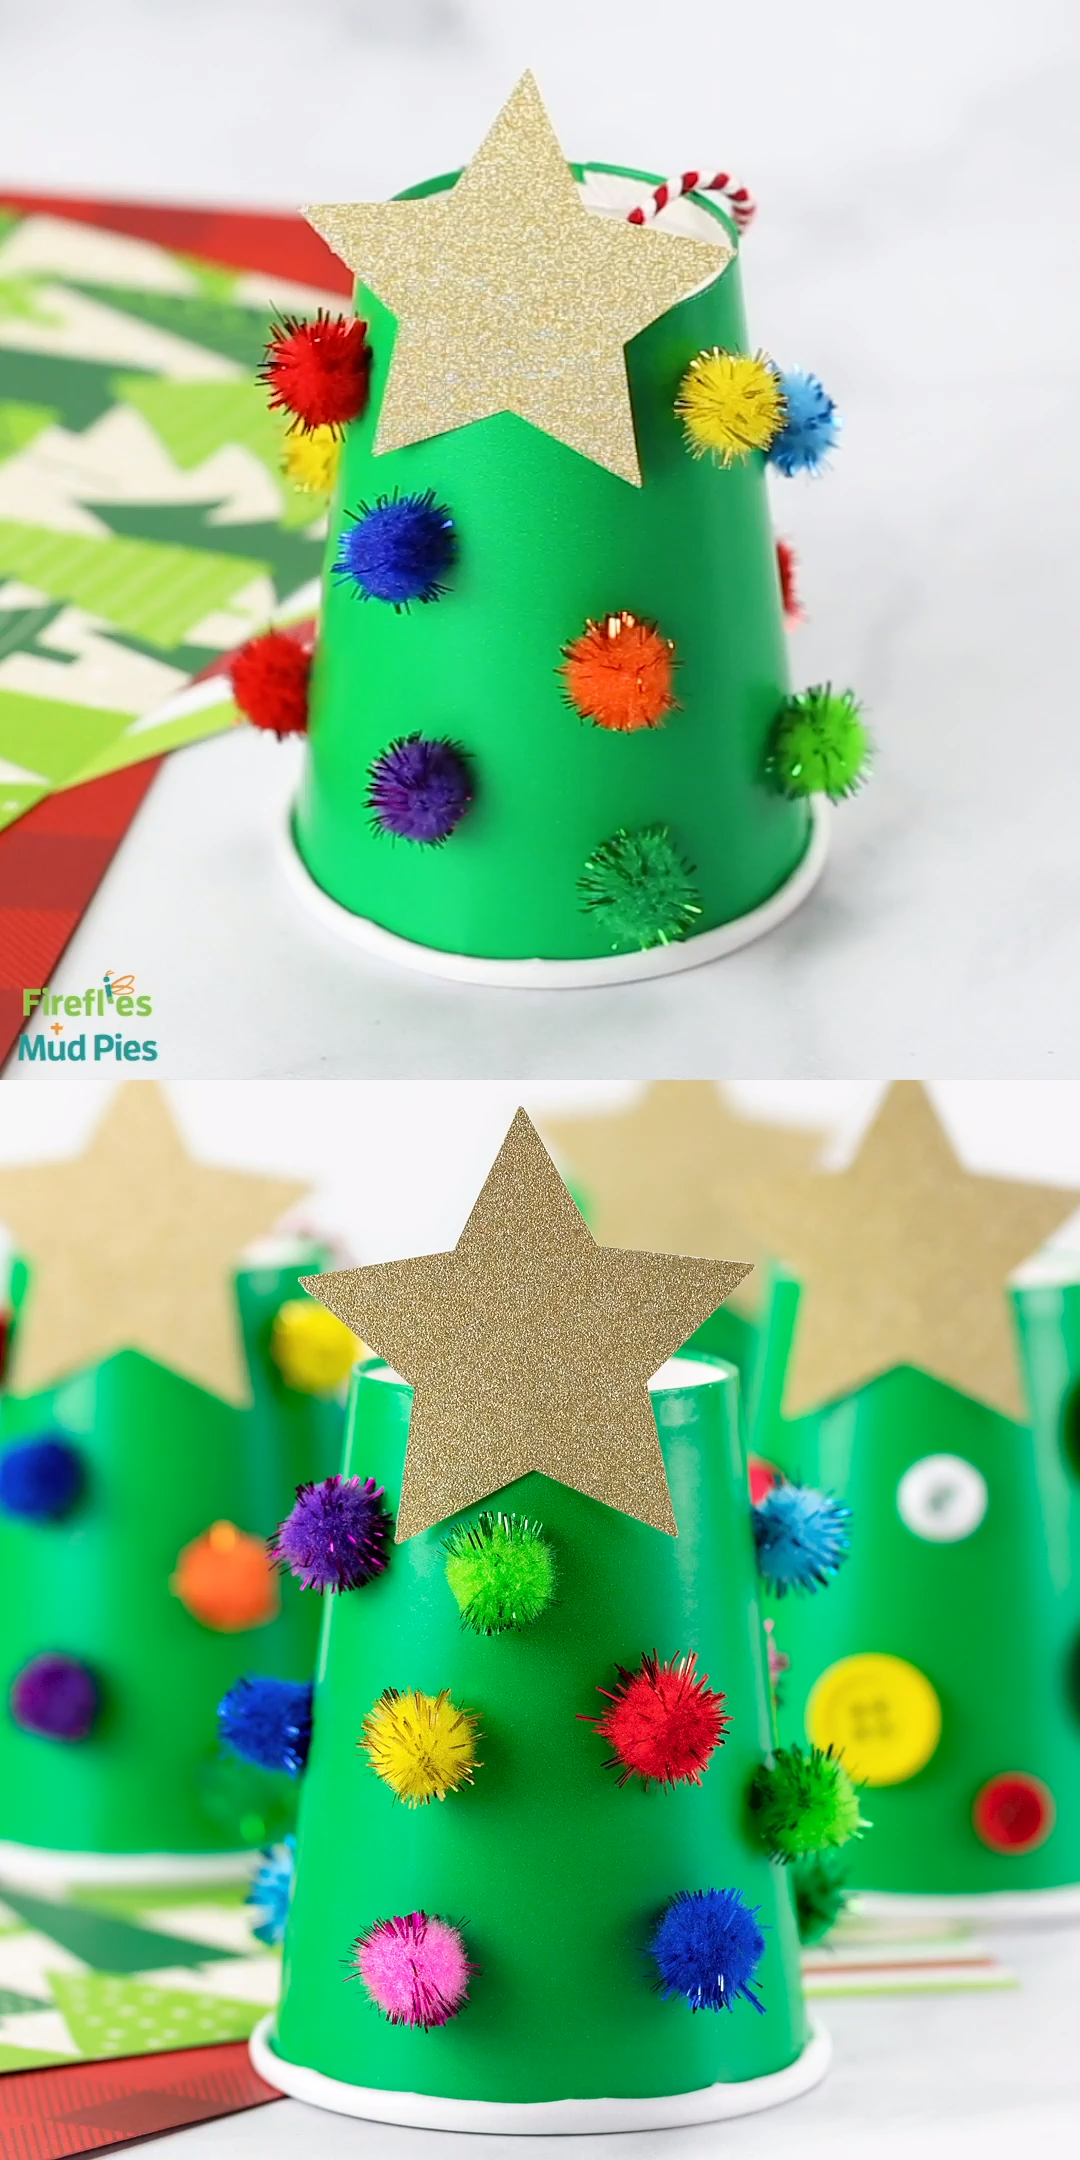 Paper Cup Christmas Tree Christmas Cup Paper Tree Christmas Crafts Christmas Crafts For Kids Christmas Tree Crafts